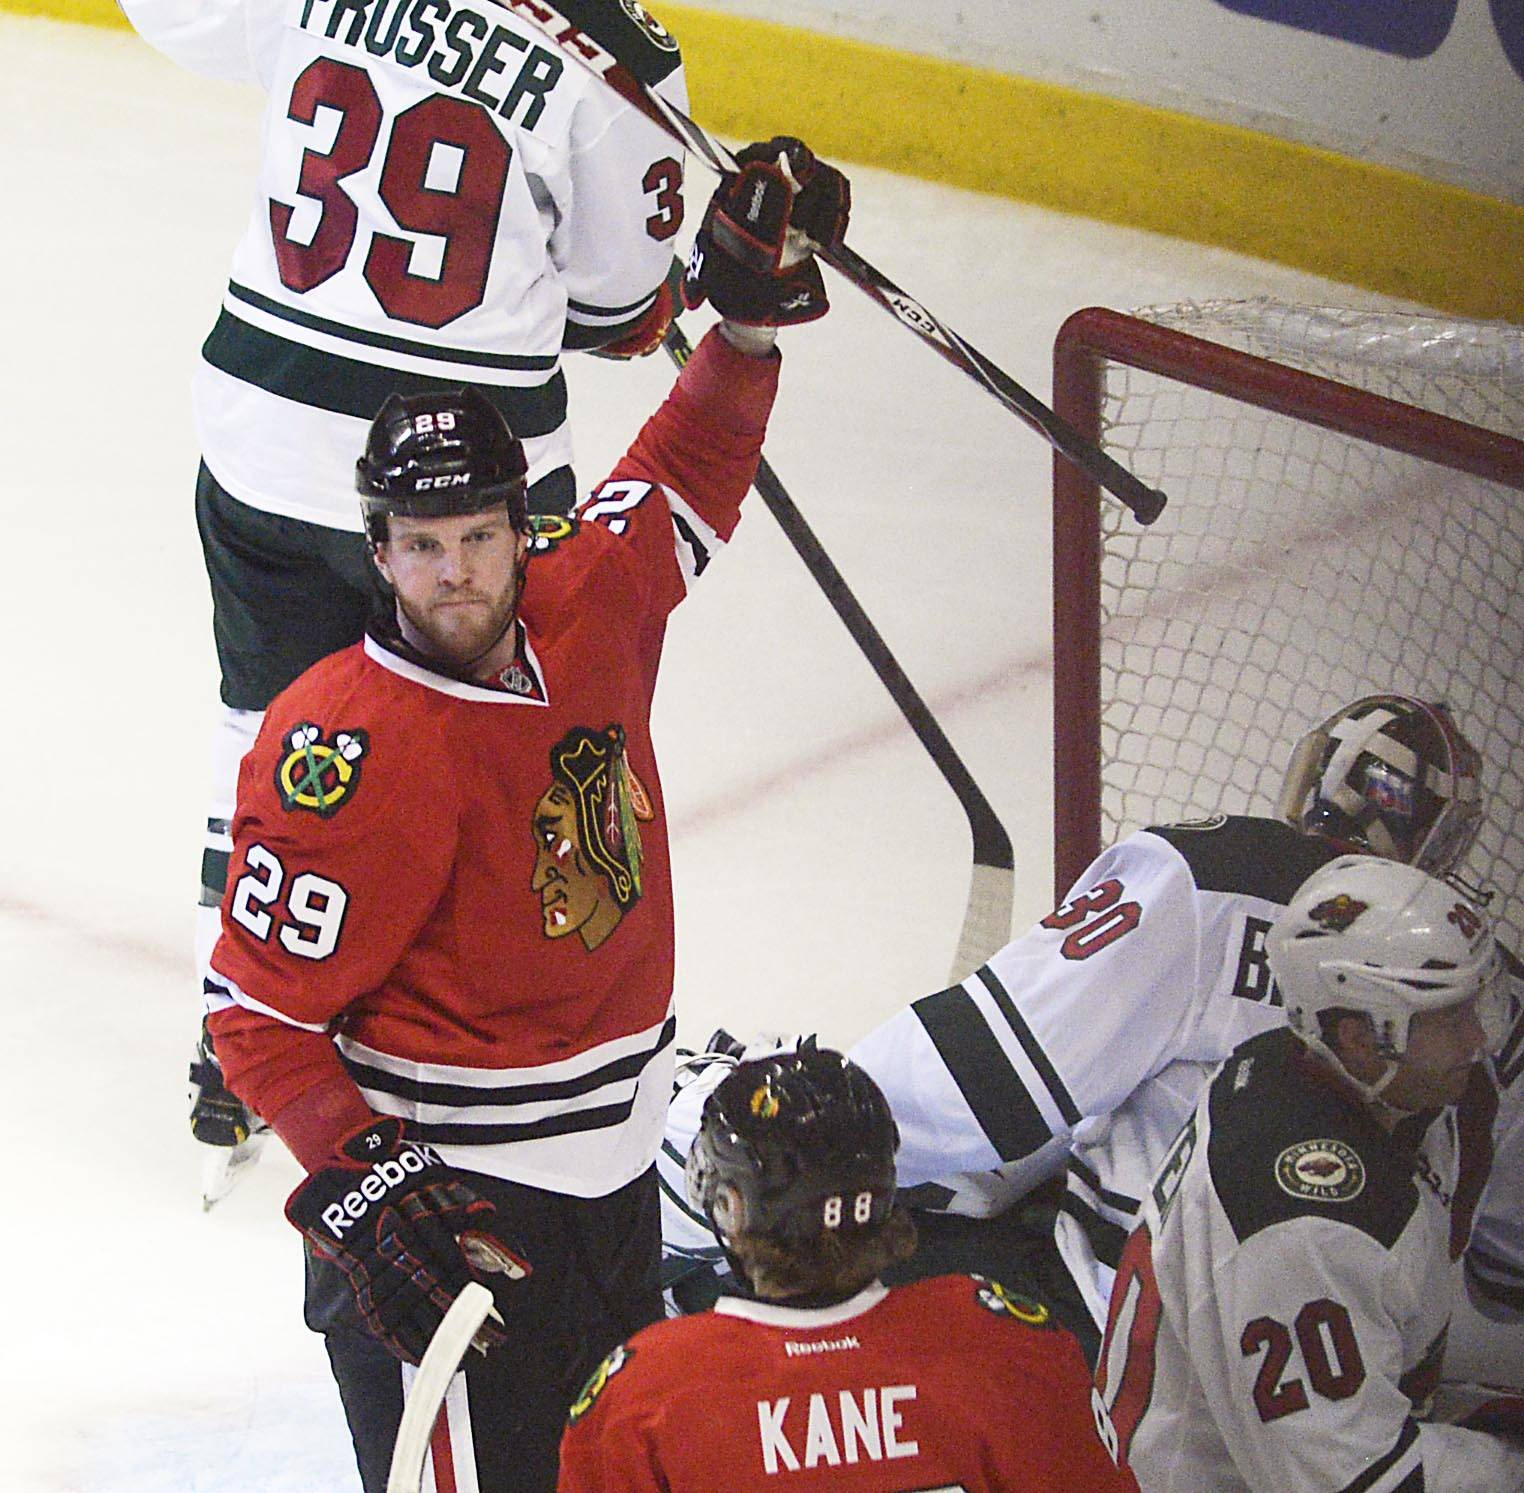 Chicago Blackhawks left wing Bryan Bickell raises his stick after his first period goal against the Minnesota Wild S.